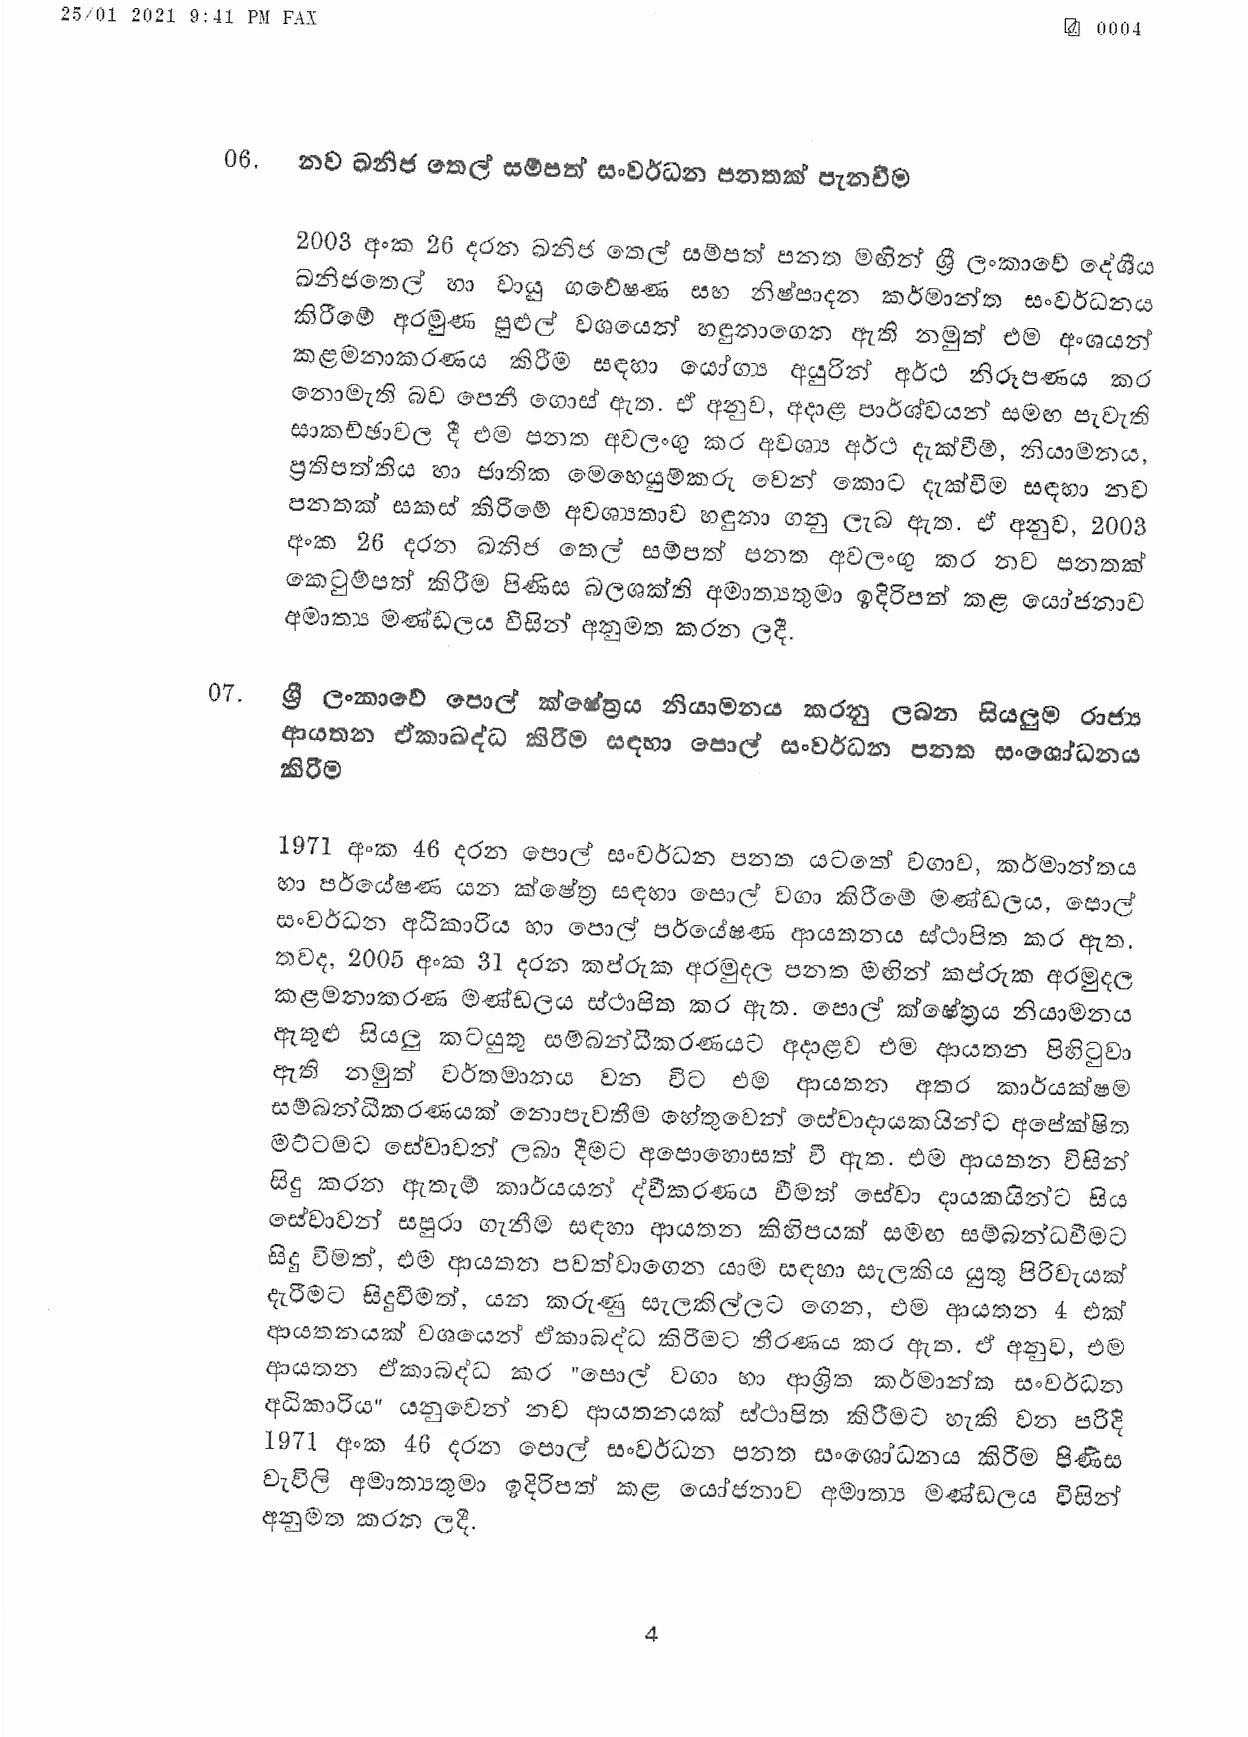 Cabinet Decision on 25.01.2021 page 004